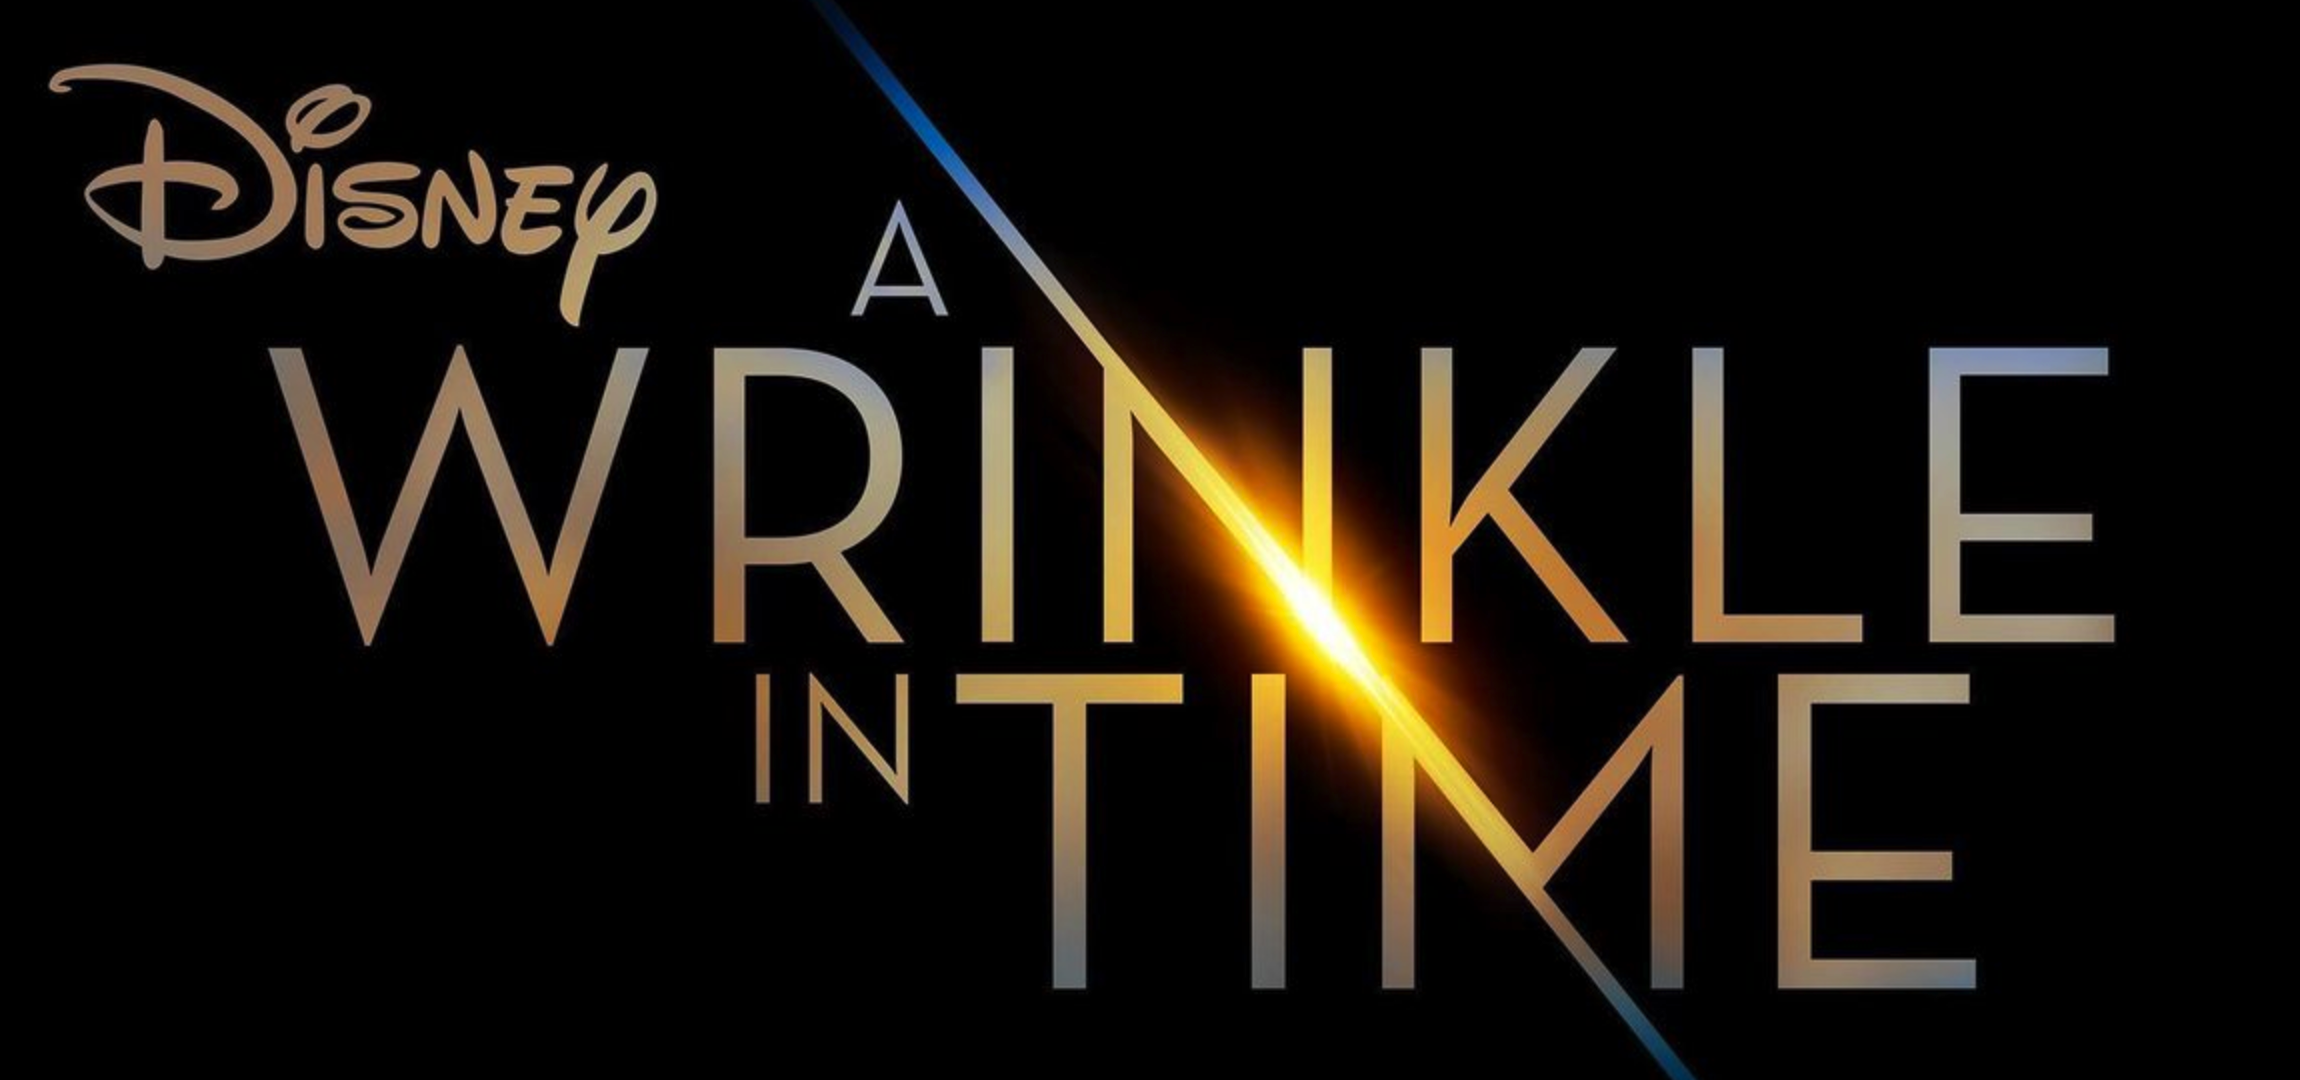 a wrinkle in time title